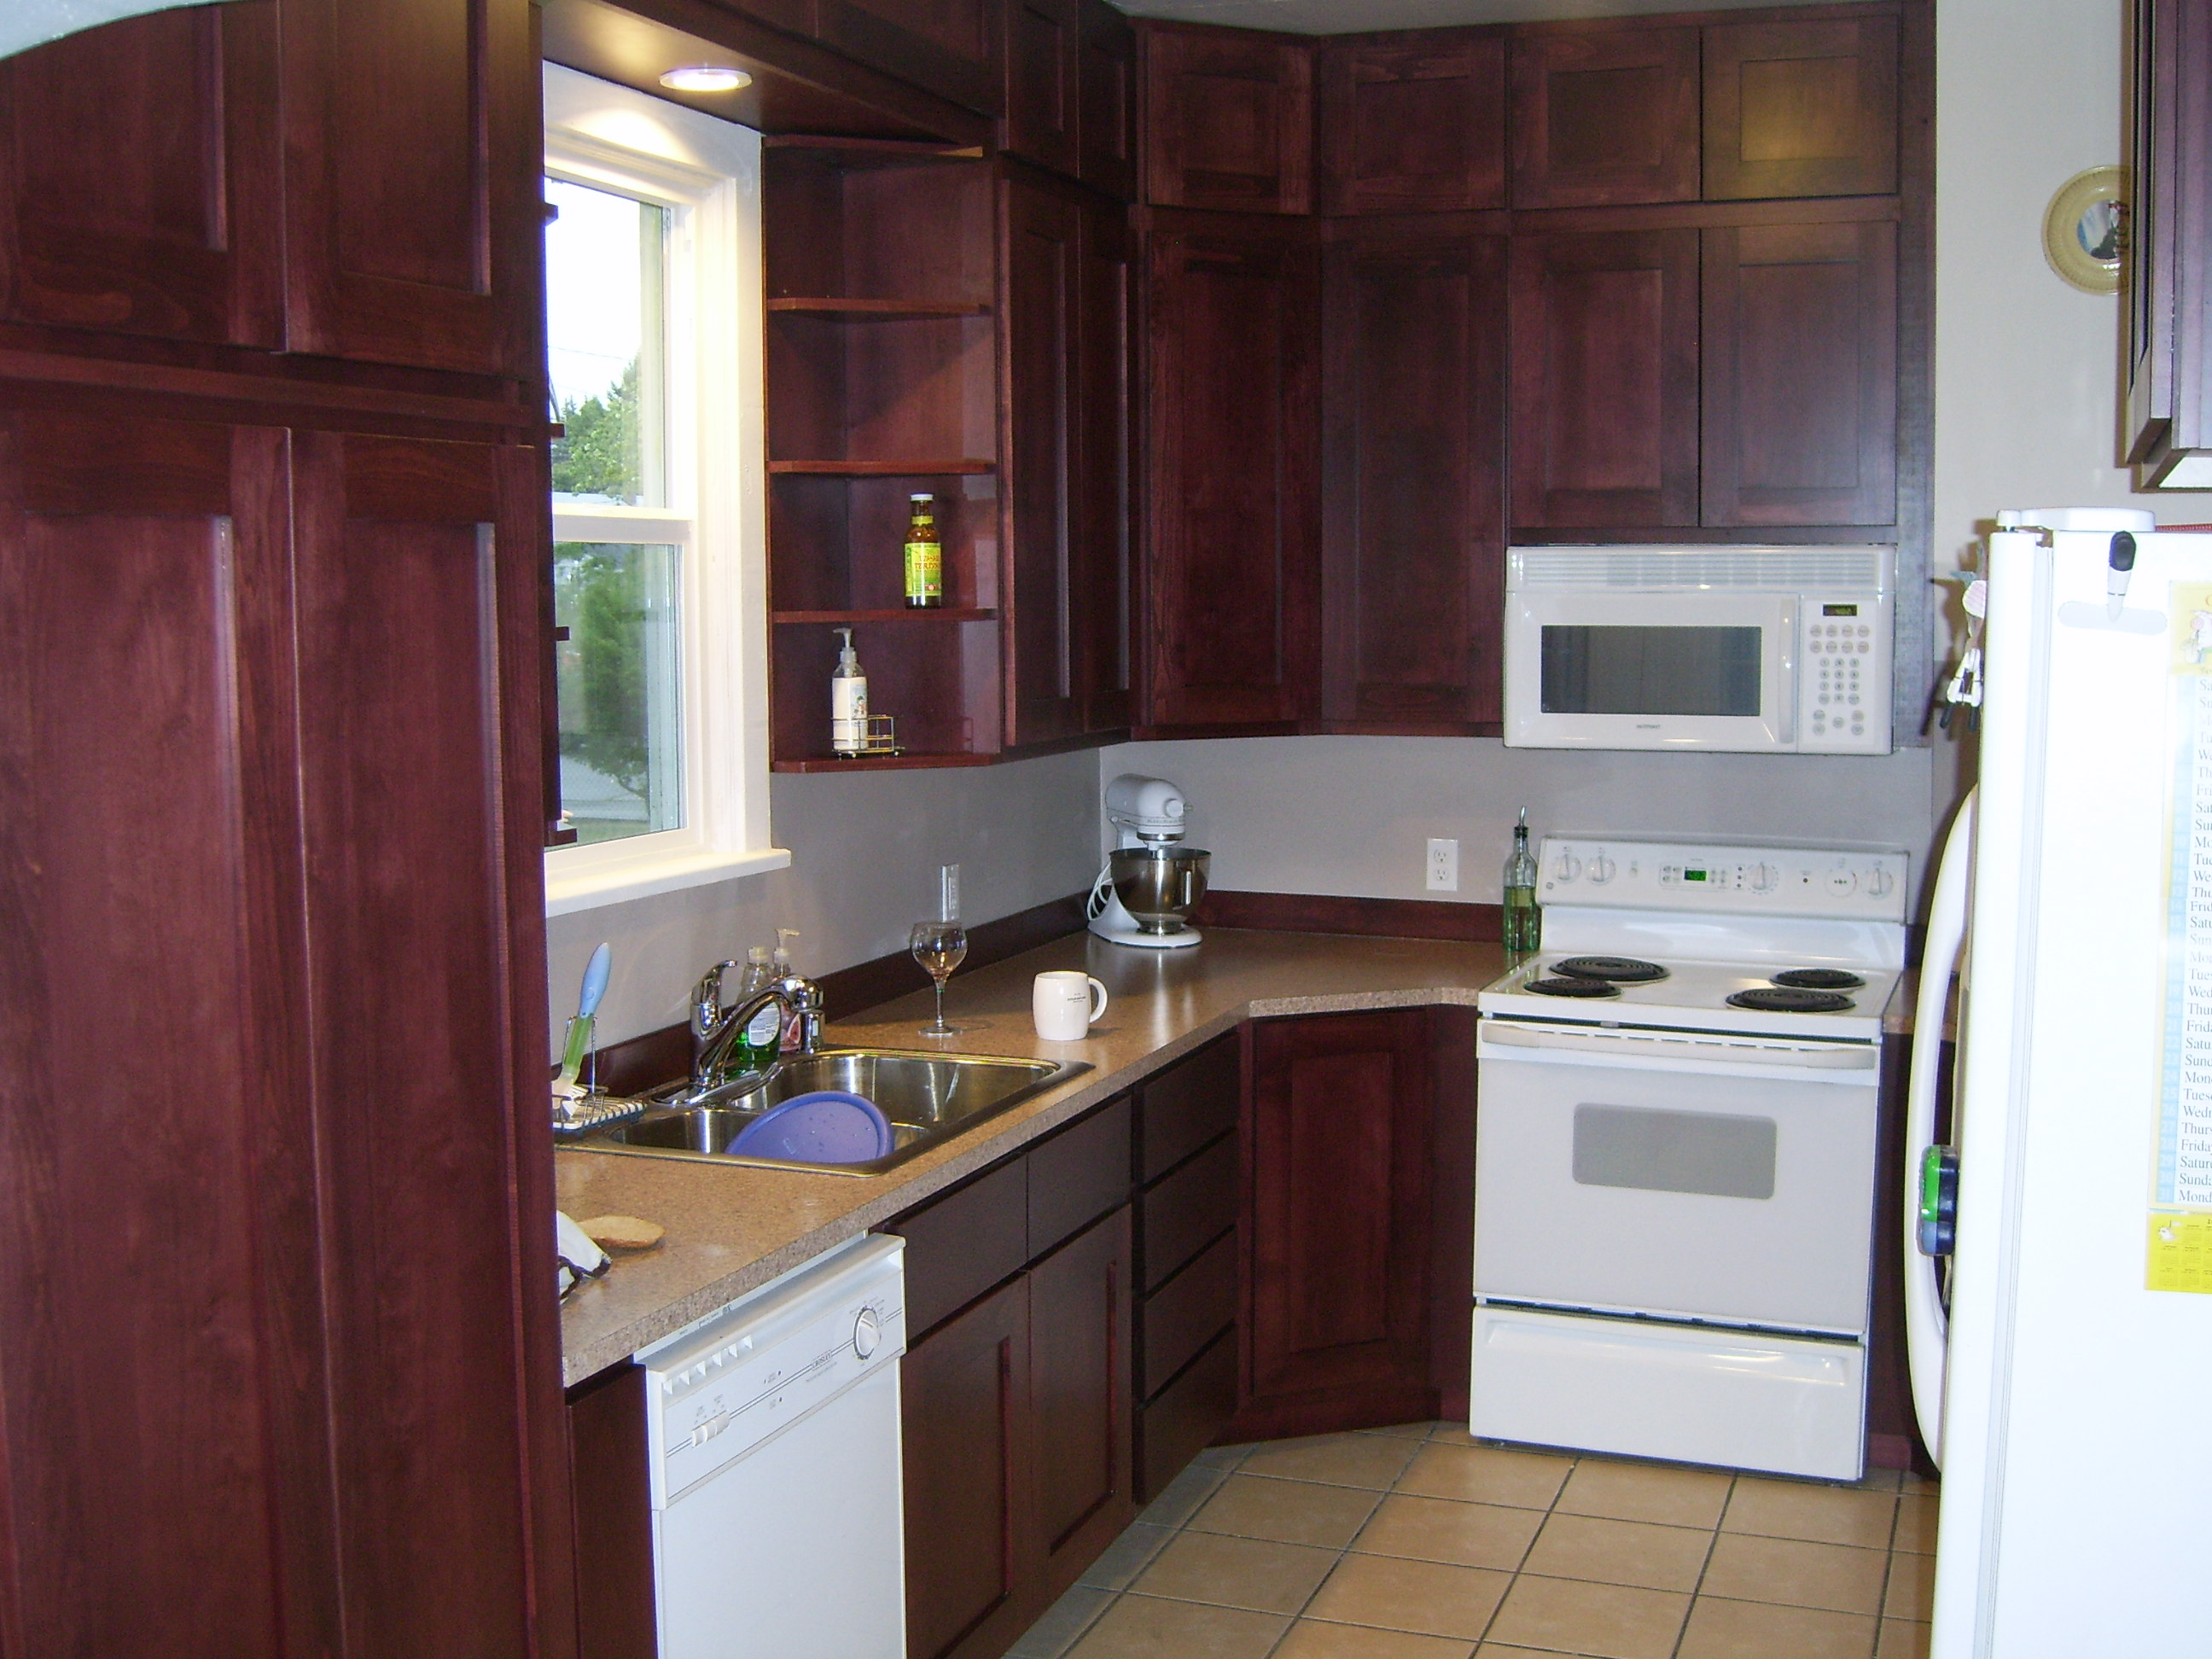 Superieur Newly Remodeled Kitchen With New Custom Cabinets